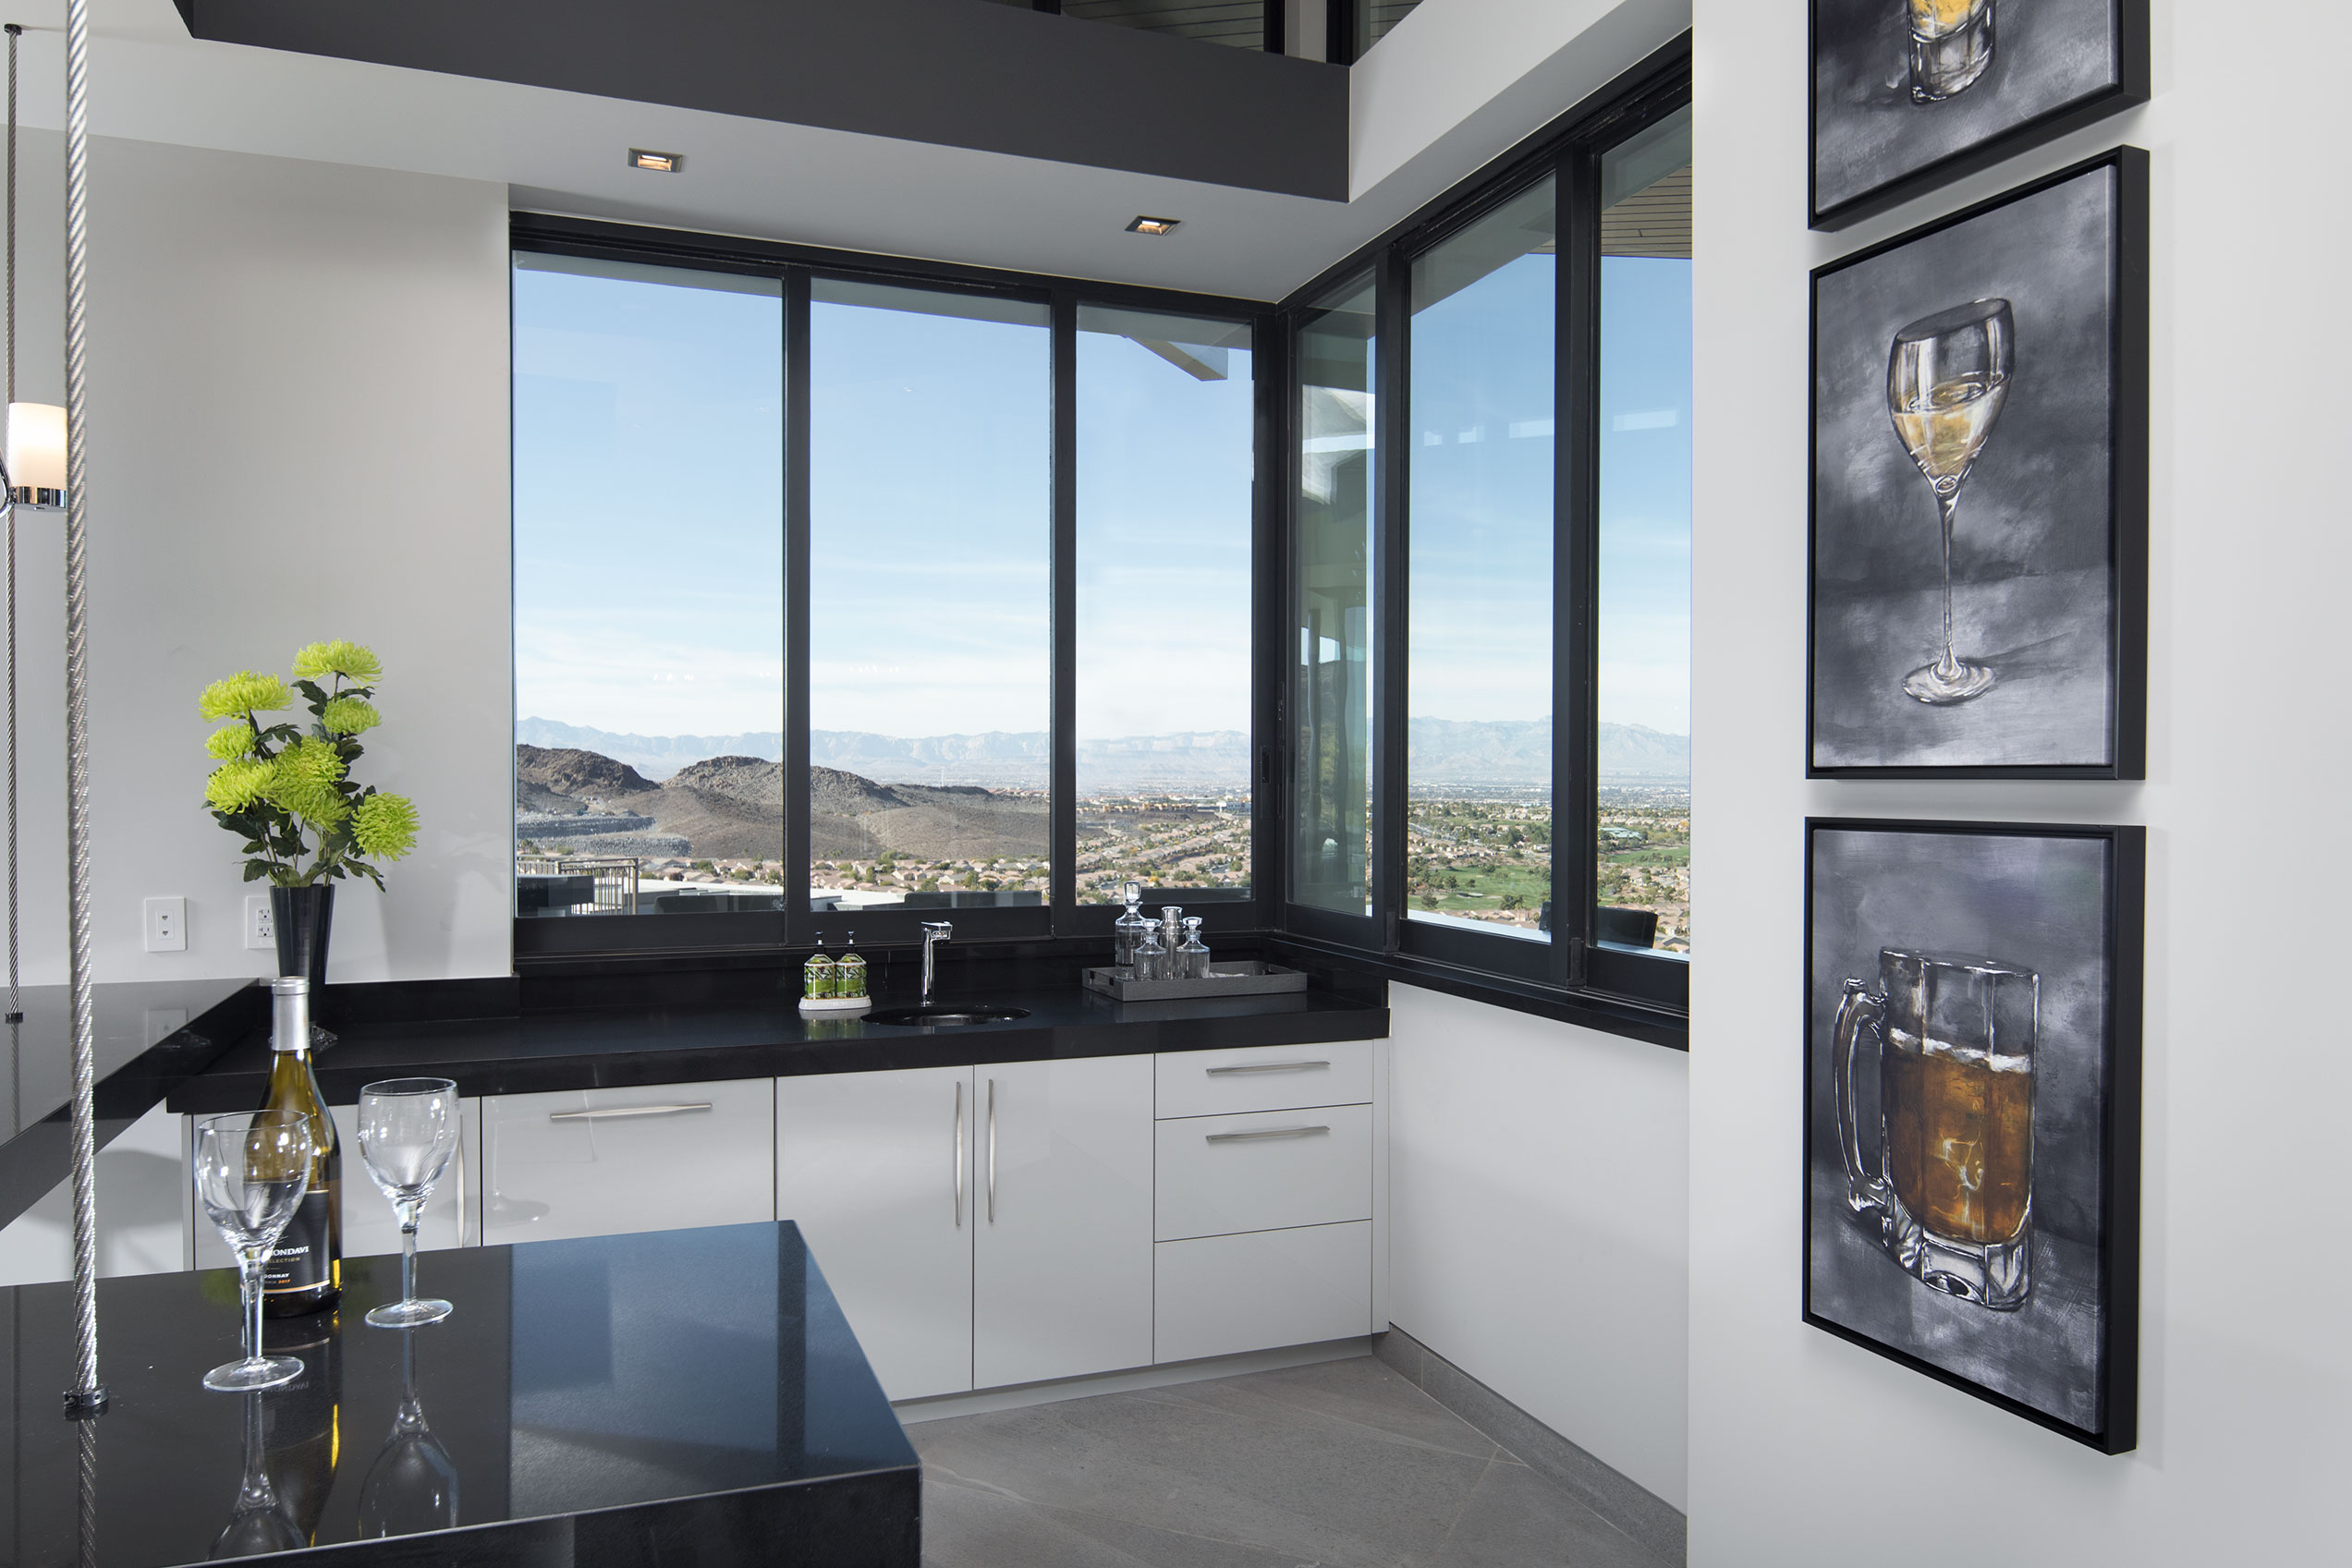 Western Window Systems products help give the rooms a clean, contemporary look.